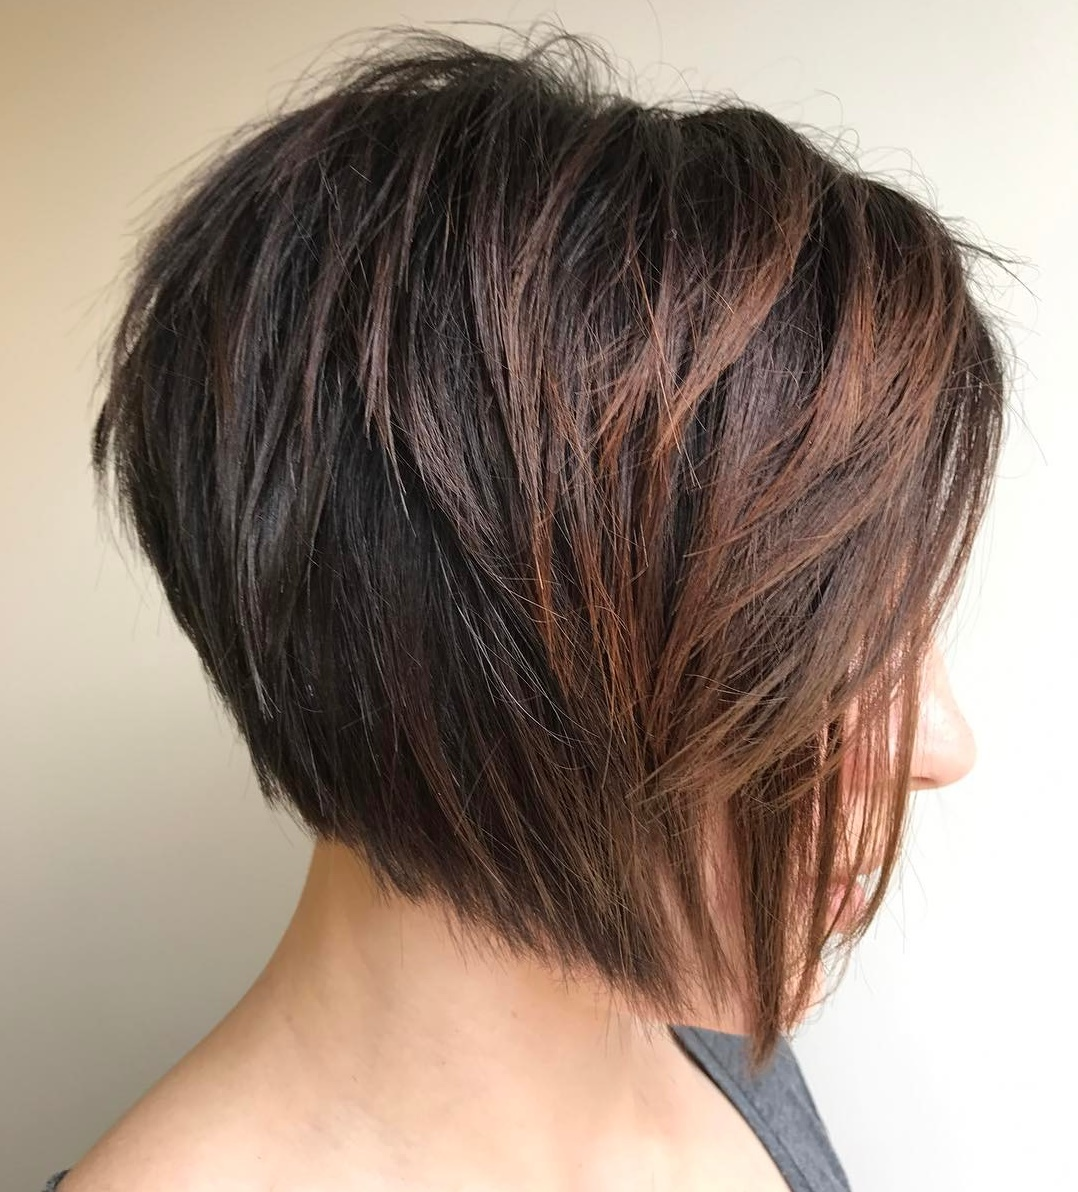 Textured Layered Bob Cut with Highlights